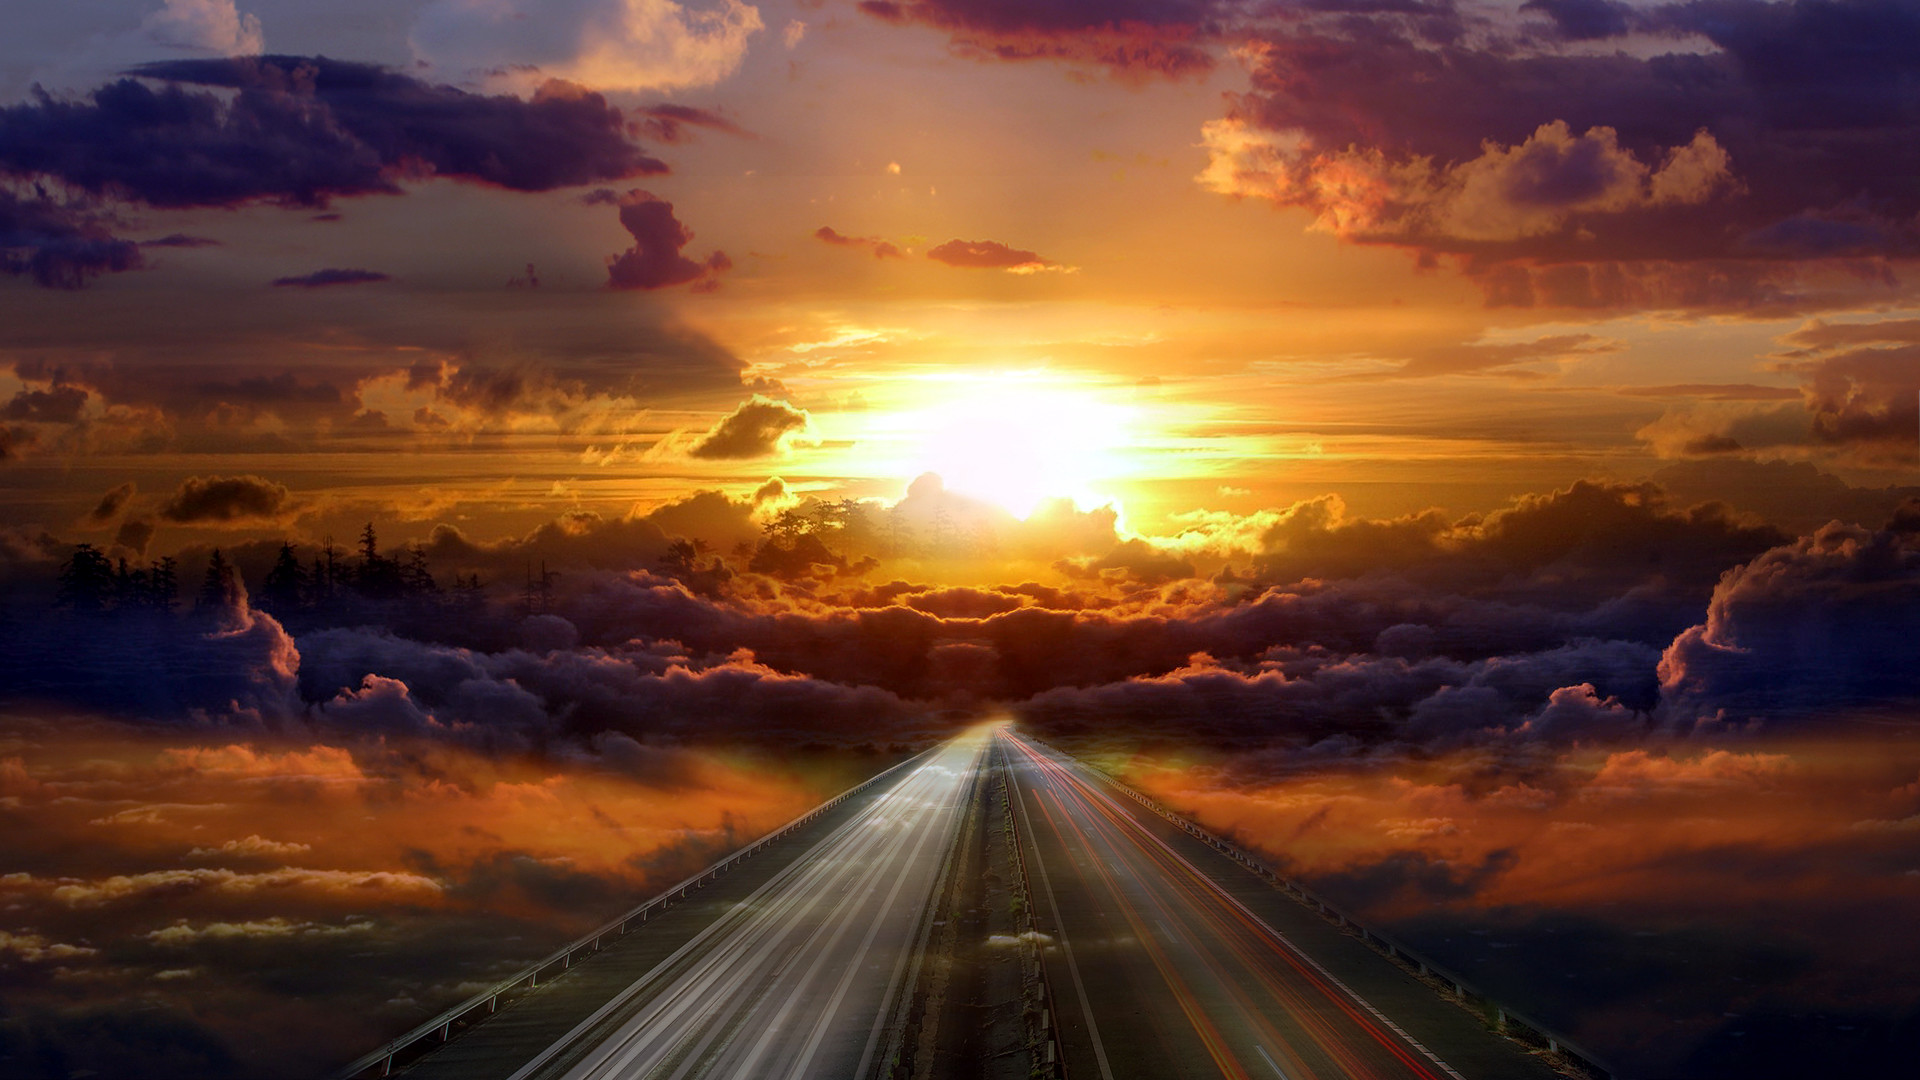 Highway surrounded by clouds wallpaper #19279